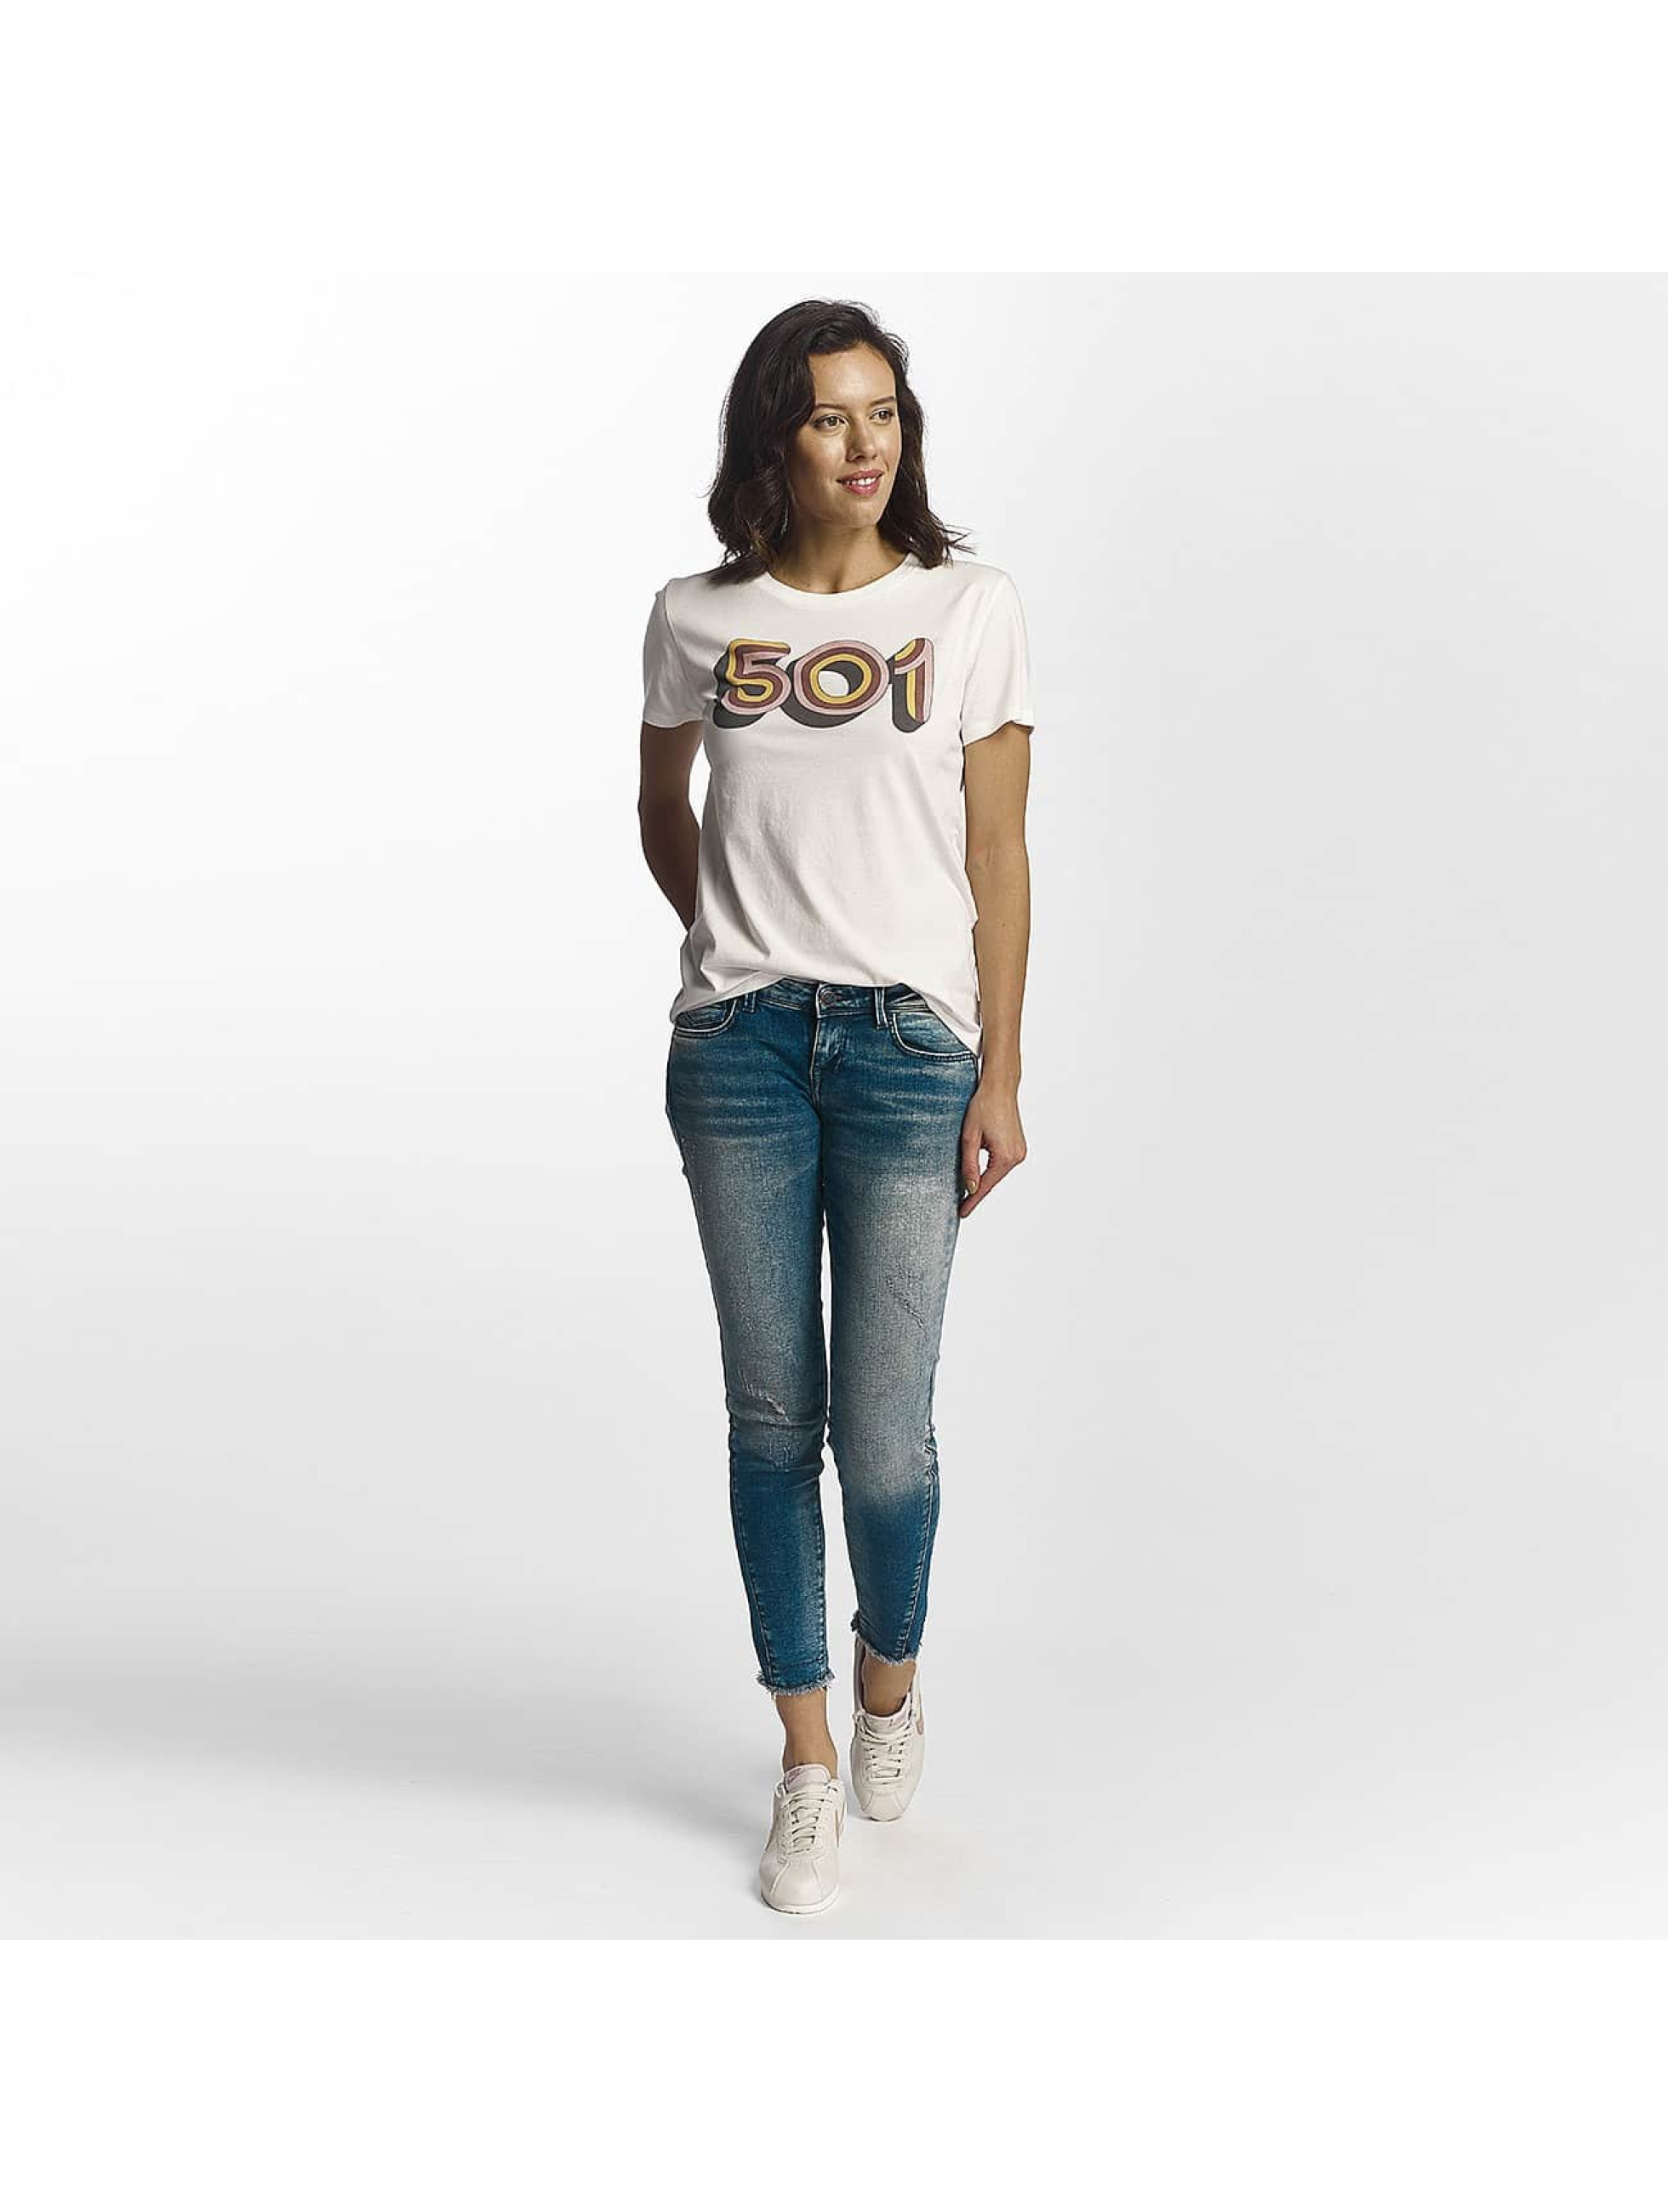 Levi's® T-Shirt Retro 501 white